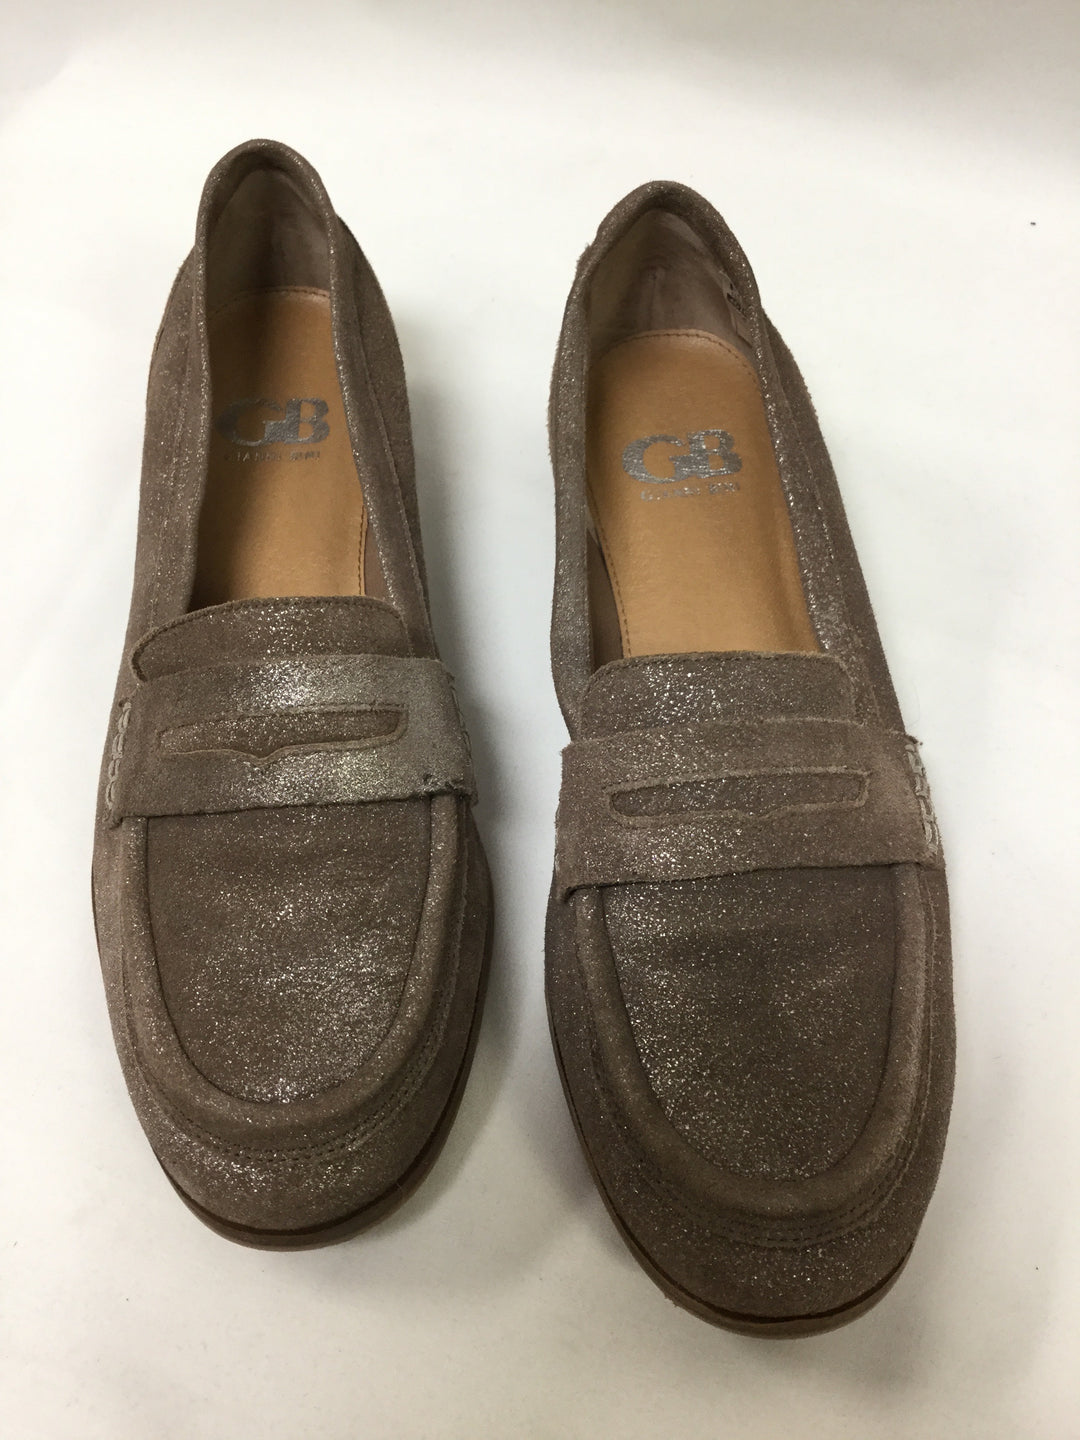 Primary Photo - BRAND: GIANNI BINI <BR>STYLE: SHOES FLATS <BR>COLOR: BROWN <BR>SIZE: 7.5 <BR>SKU: 155-155220-2937